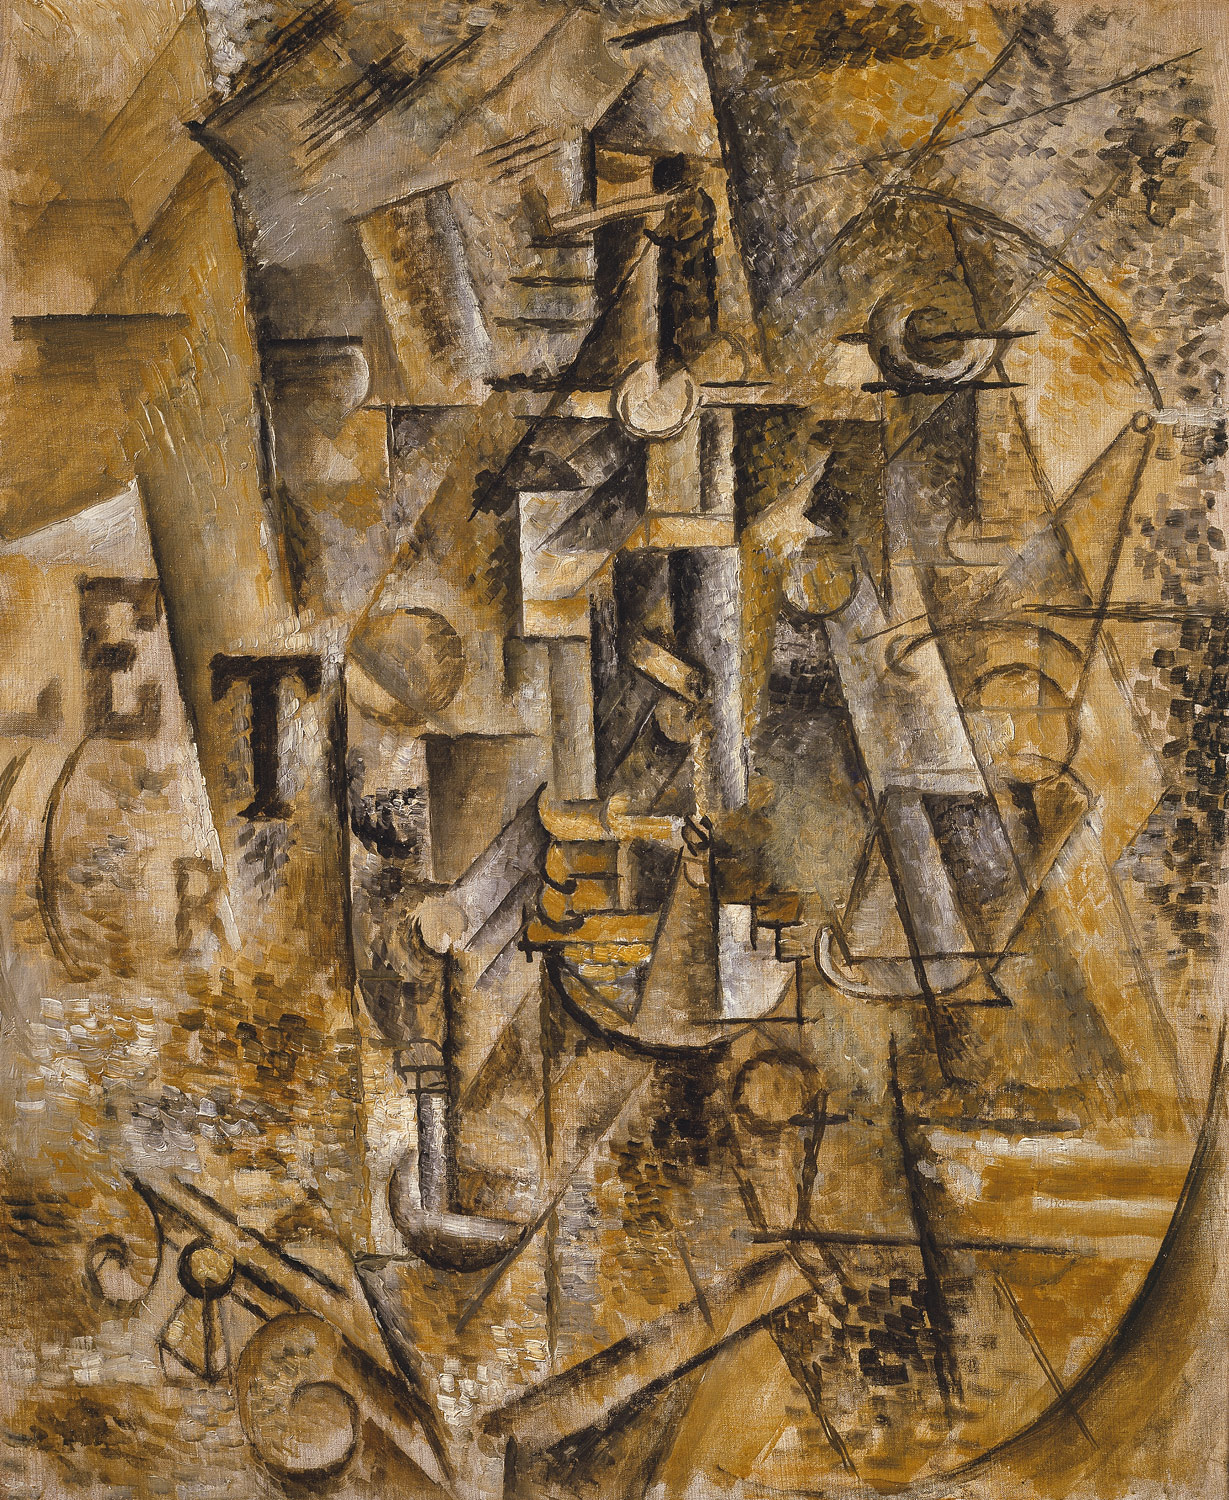 Still Life with a Bottle of Rum, Picasso